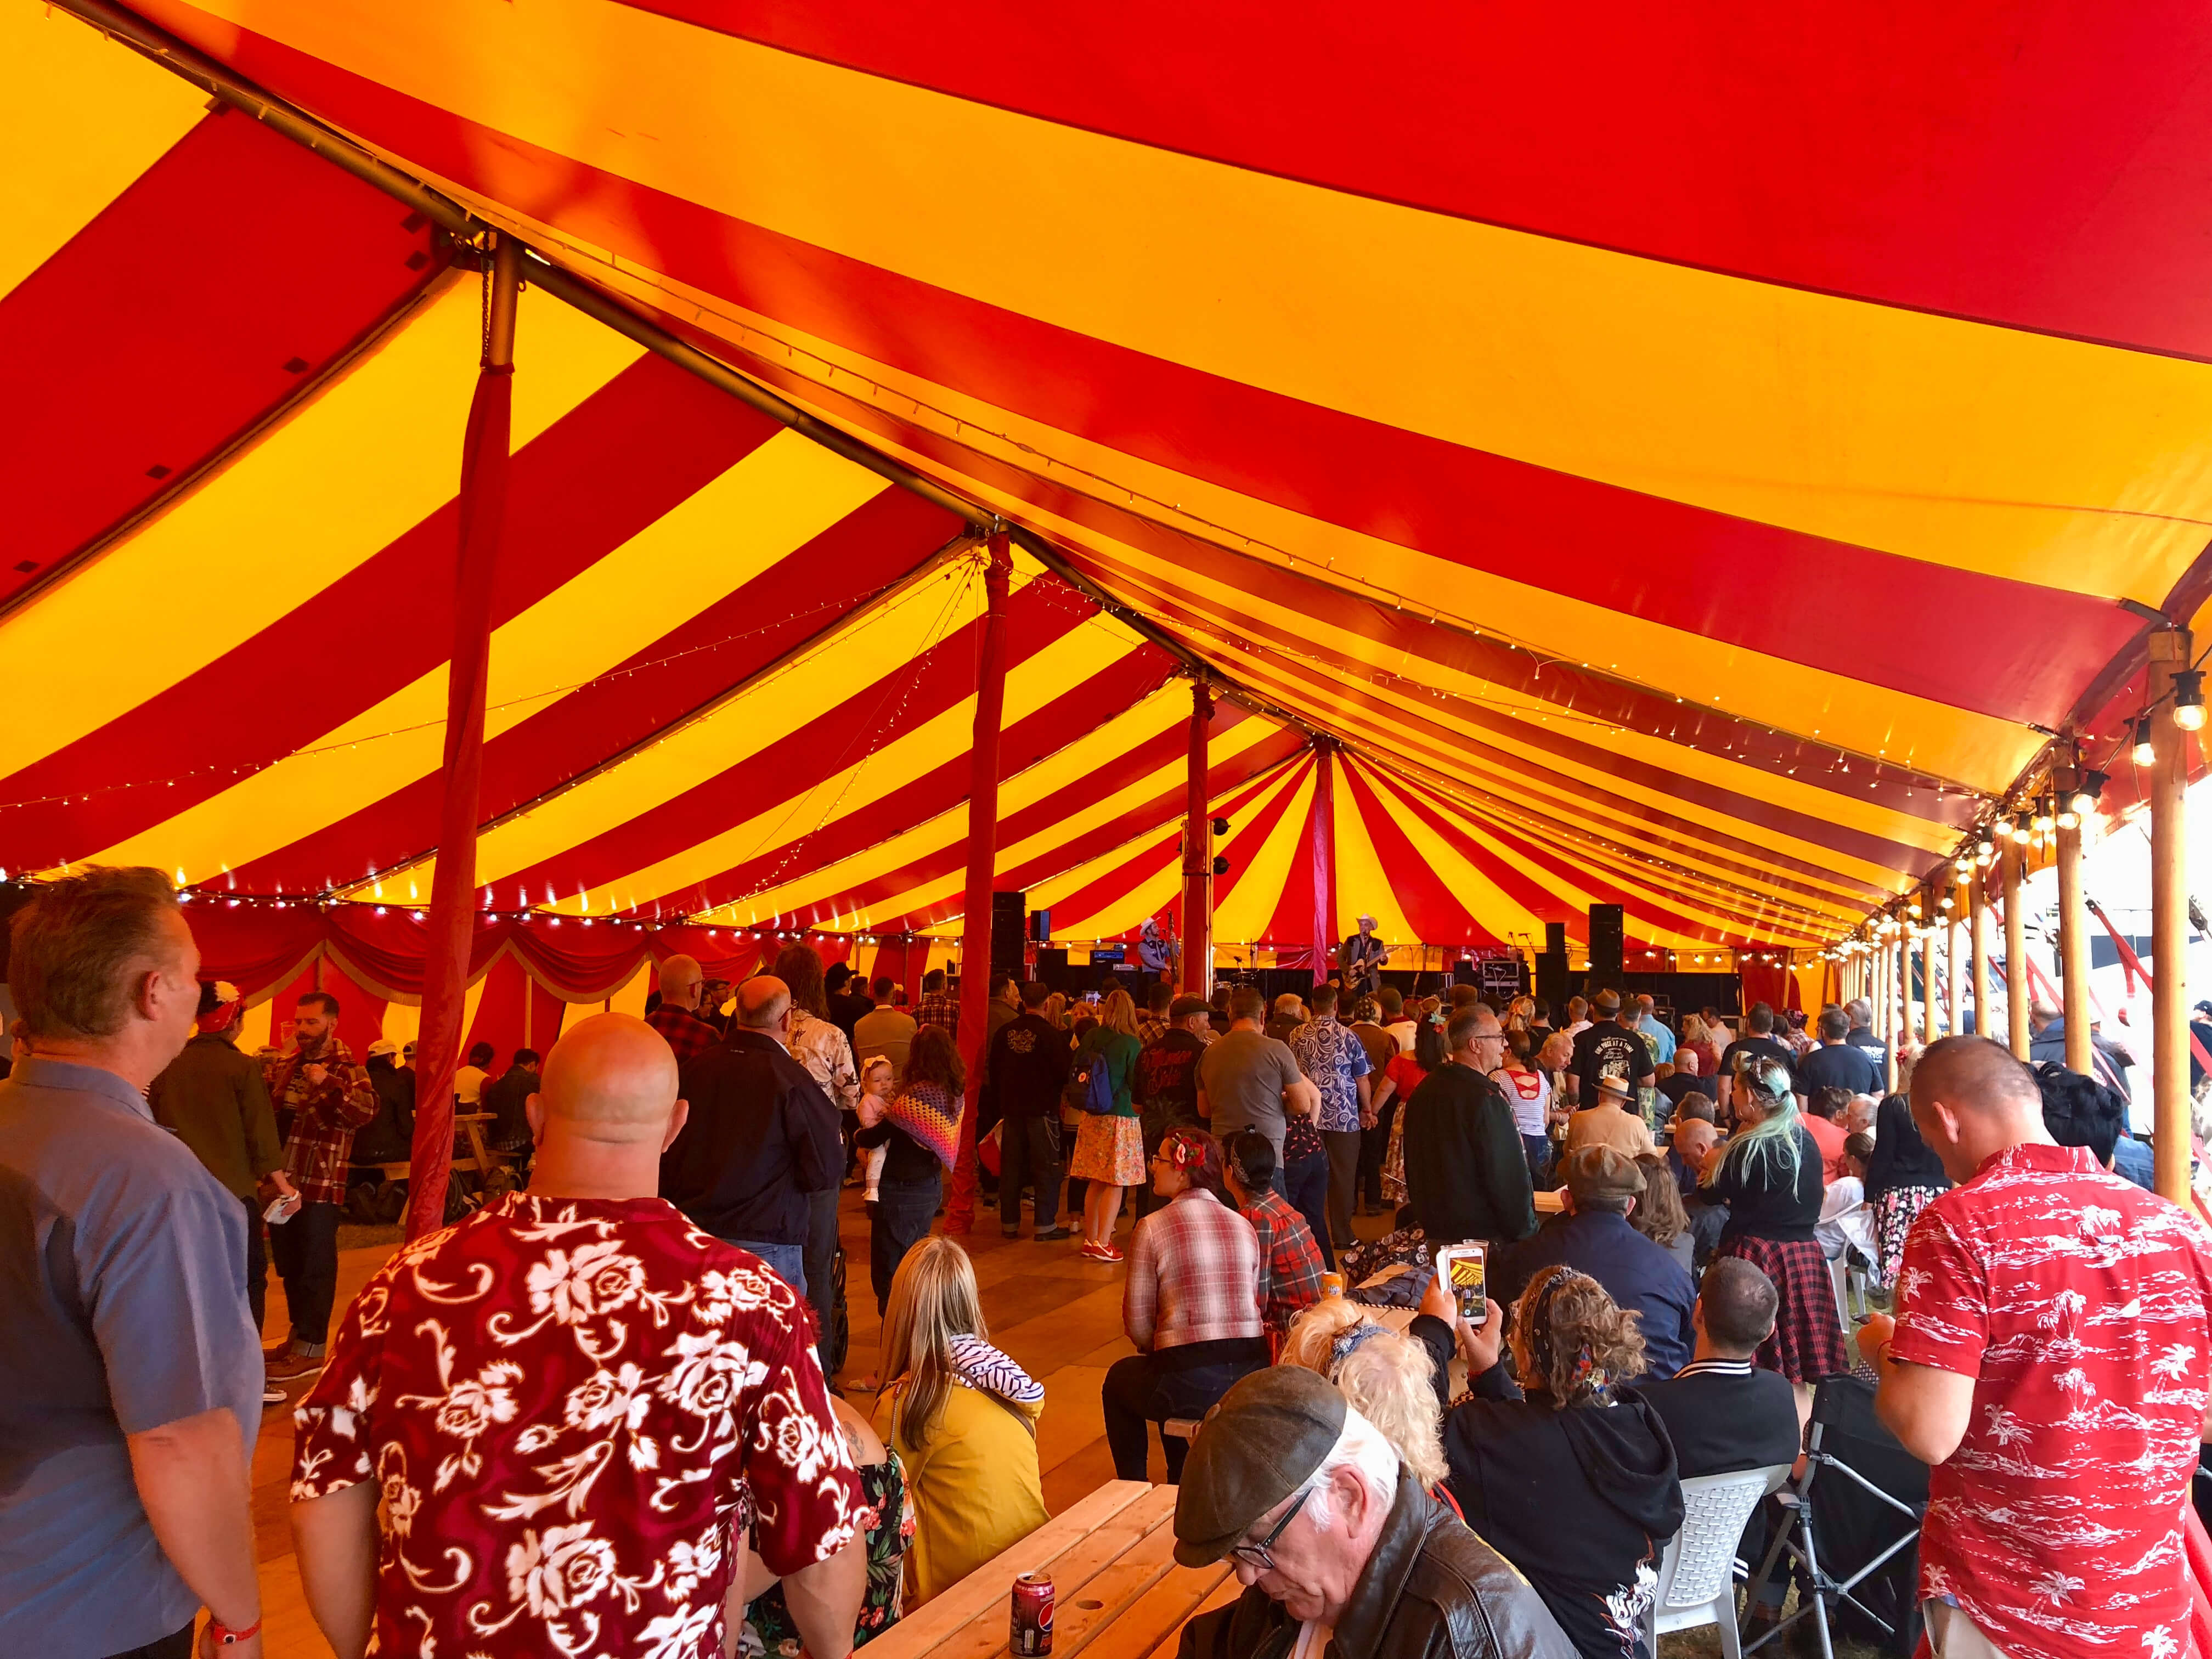 Large red & yellow marquee with 800 capacity